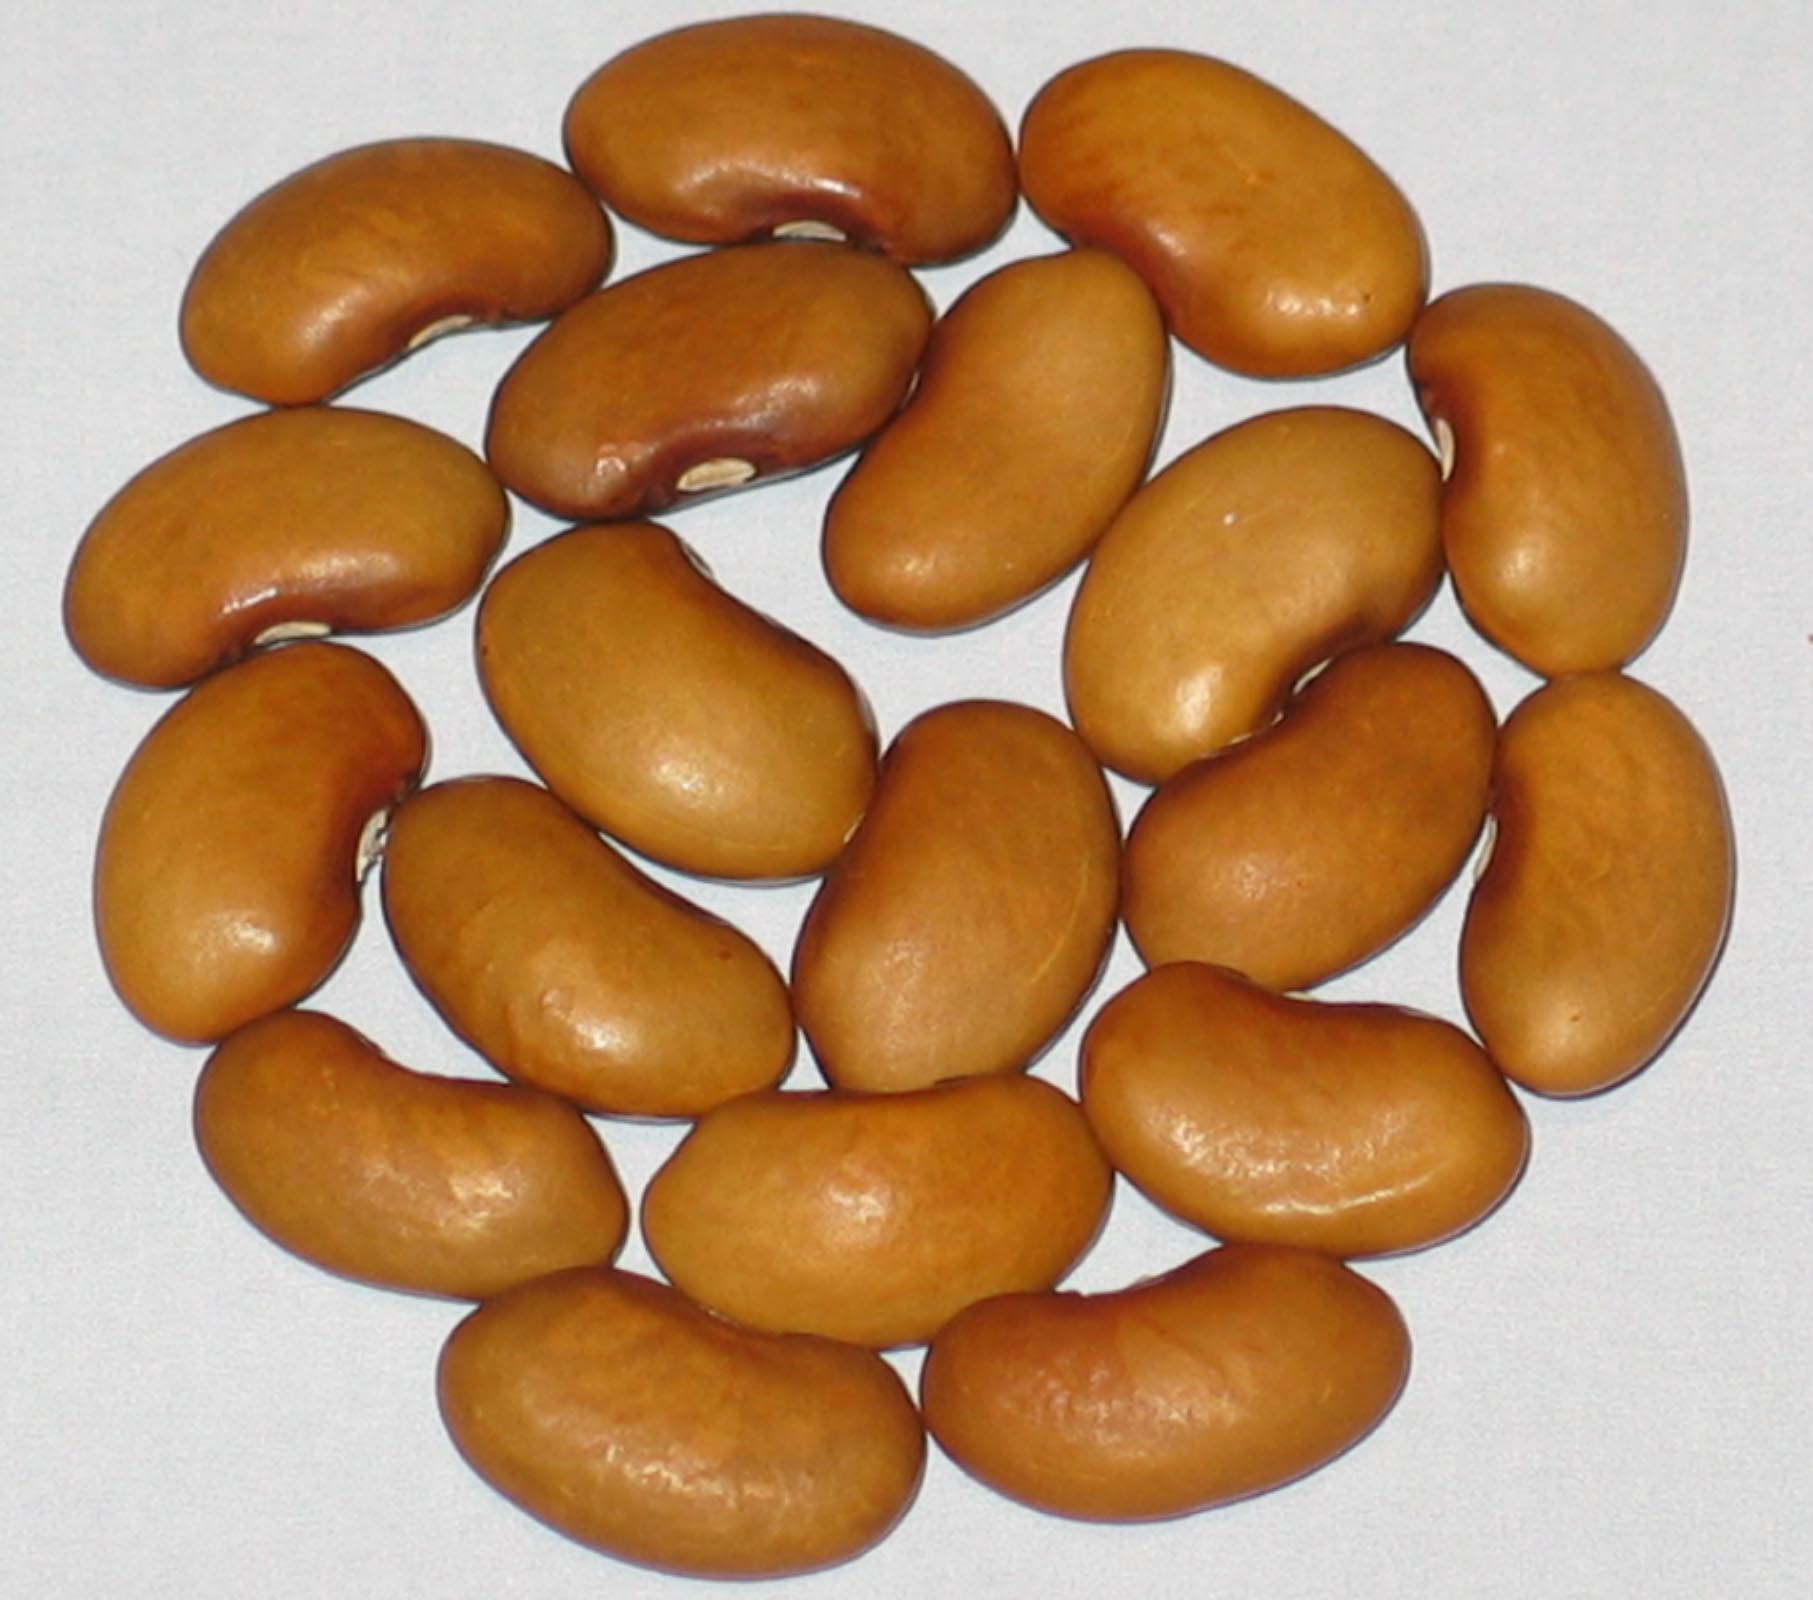 image of Improved Kidney Wax beans